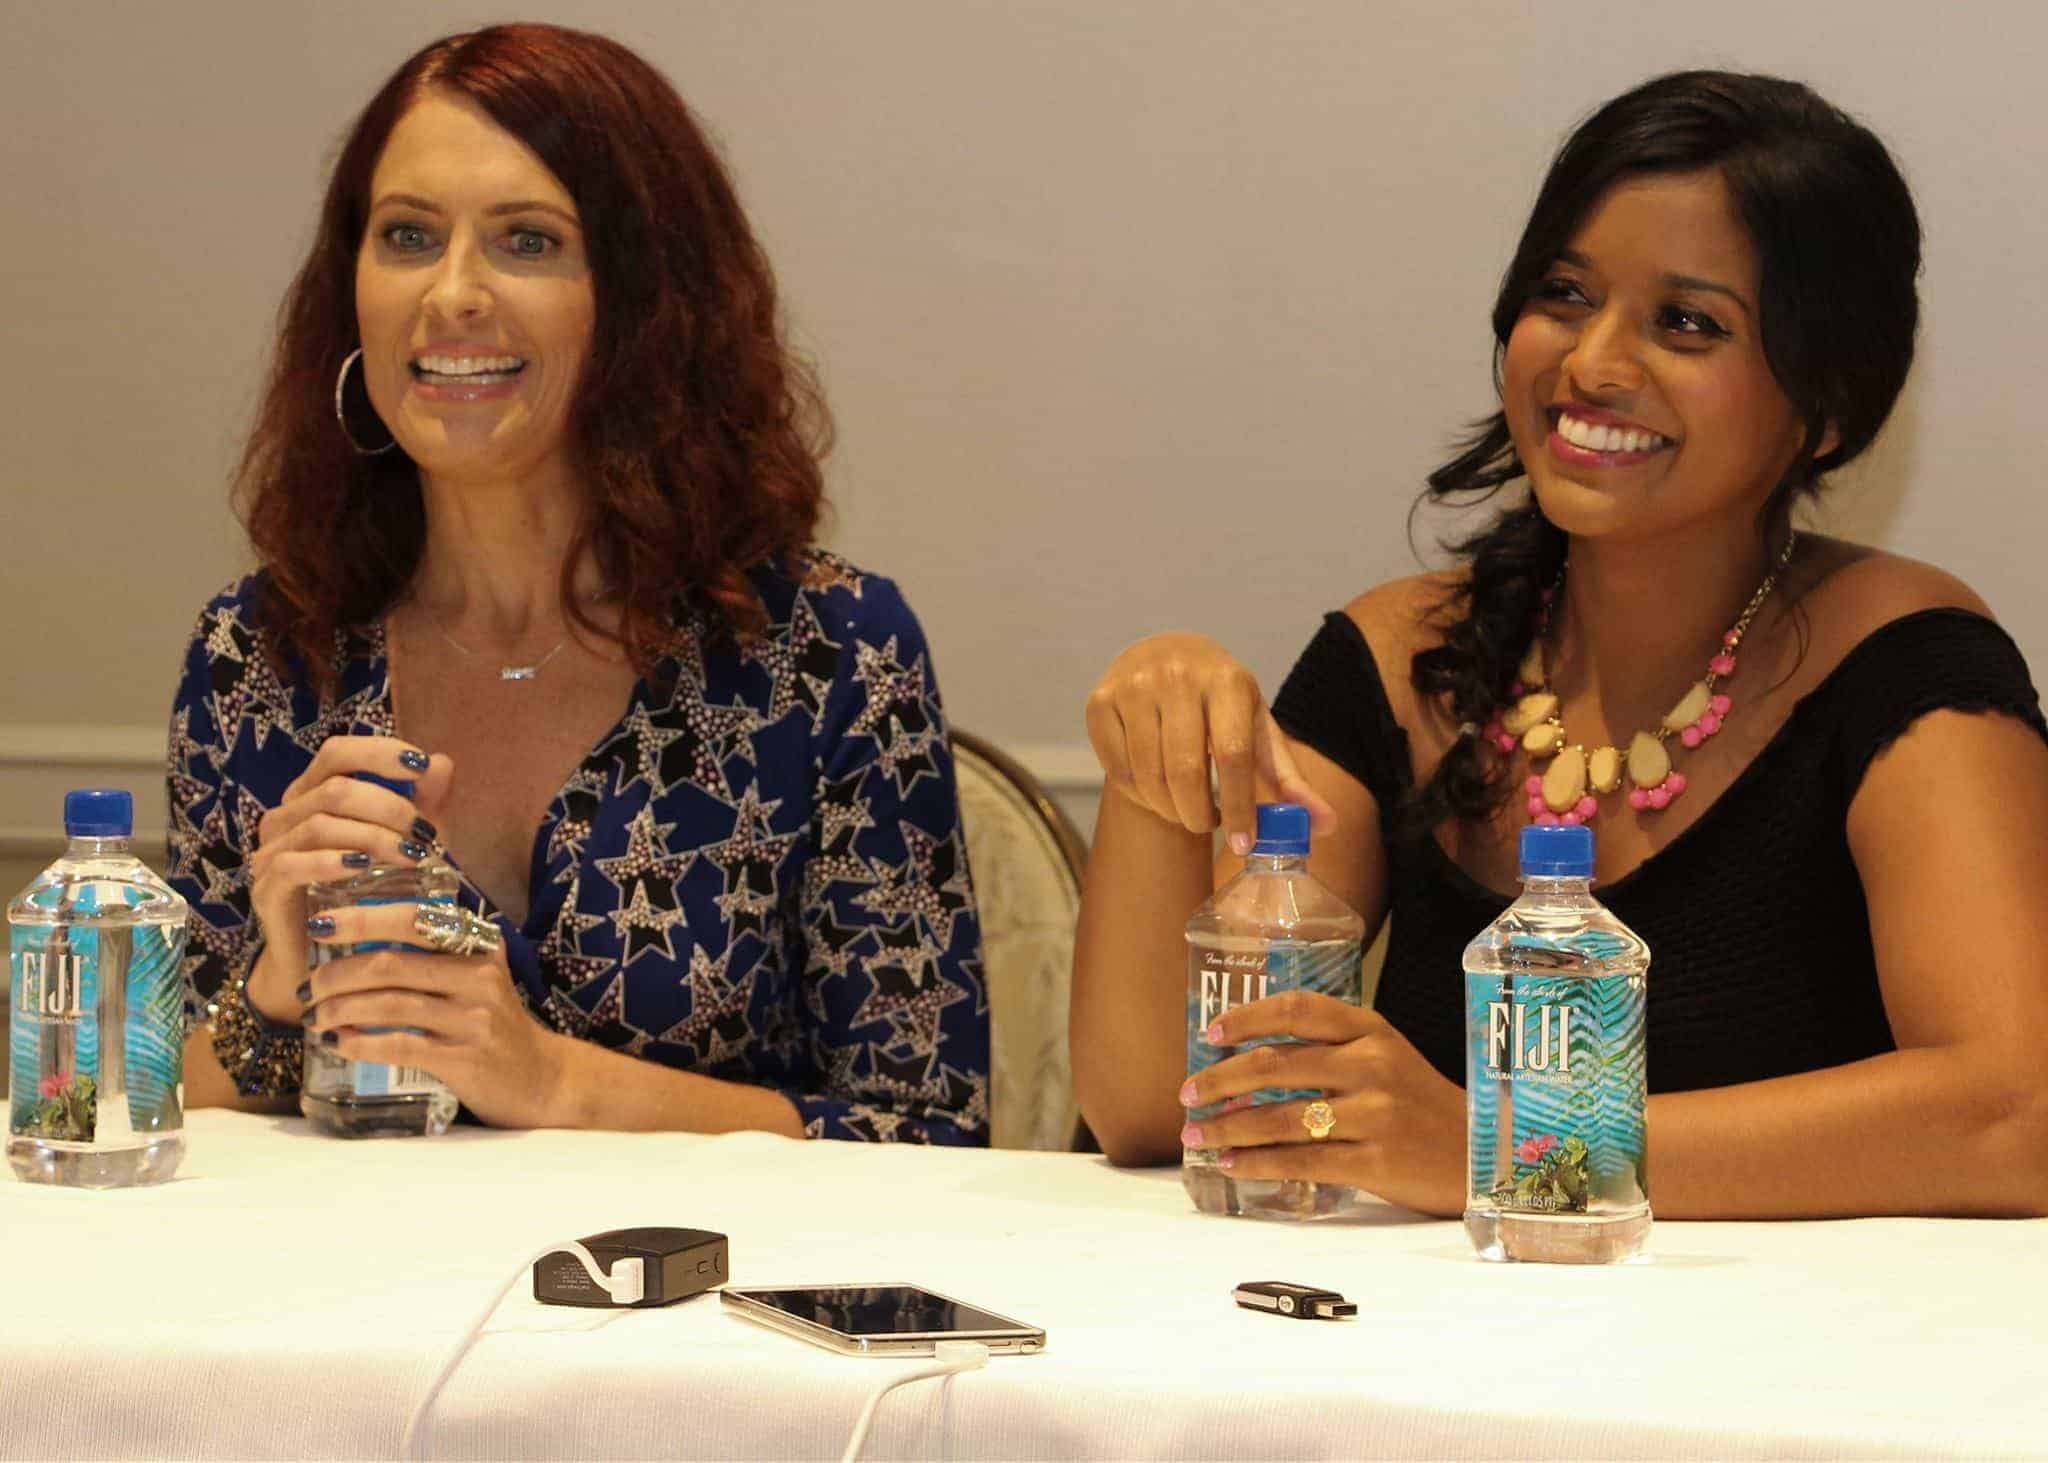 Vanessa Marshall and Tiya Sircar